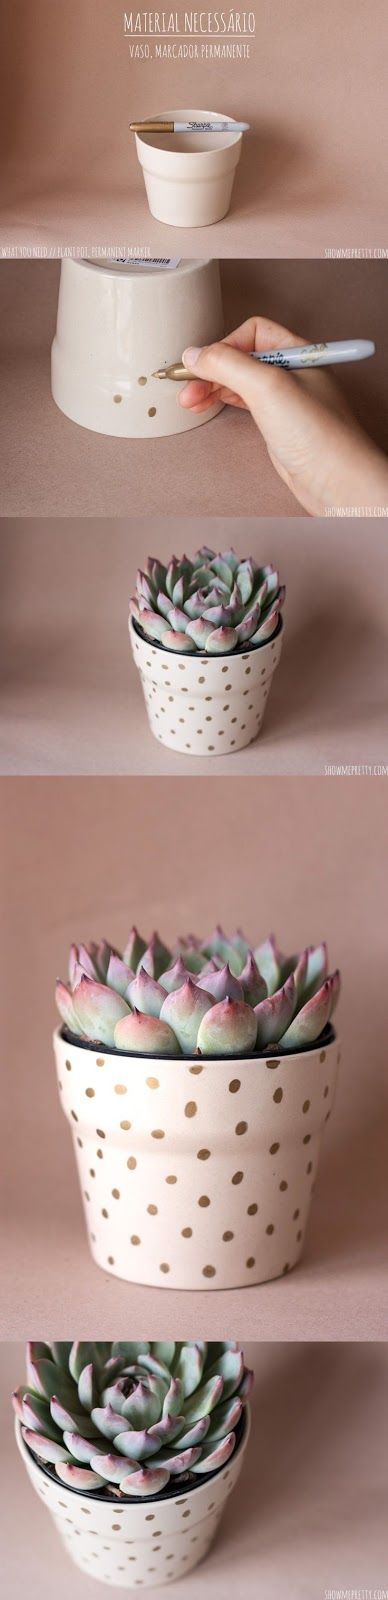 I do not understand why we need tutorials for things like this but this is super cute!!